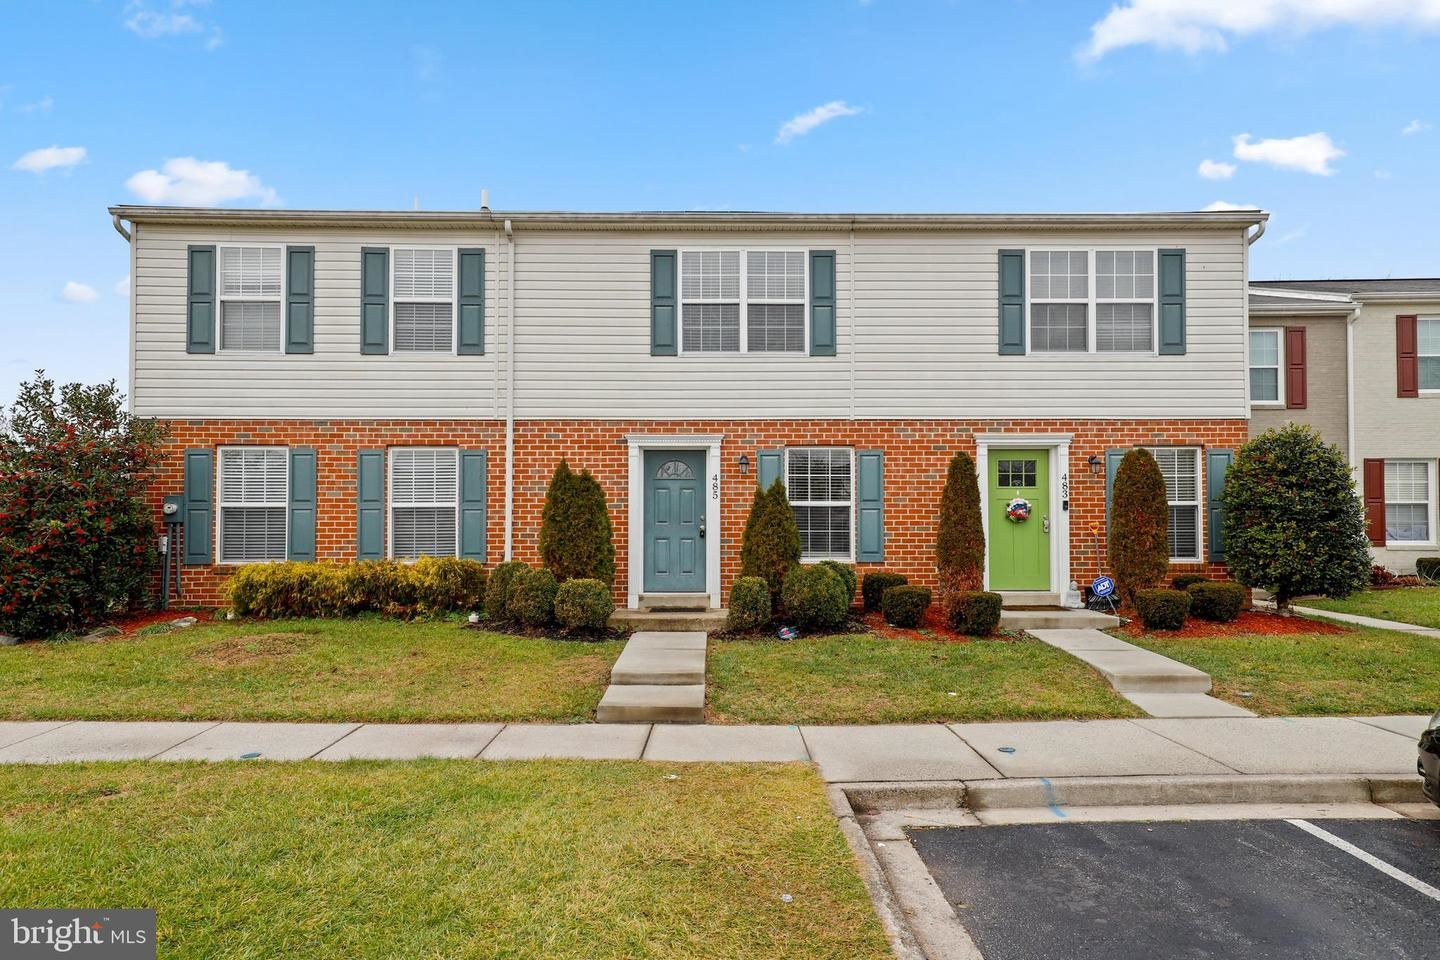 Photo of 485 ARWELL CT, FREDERICK, MD 21703 (MLS # MDFR275588)